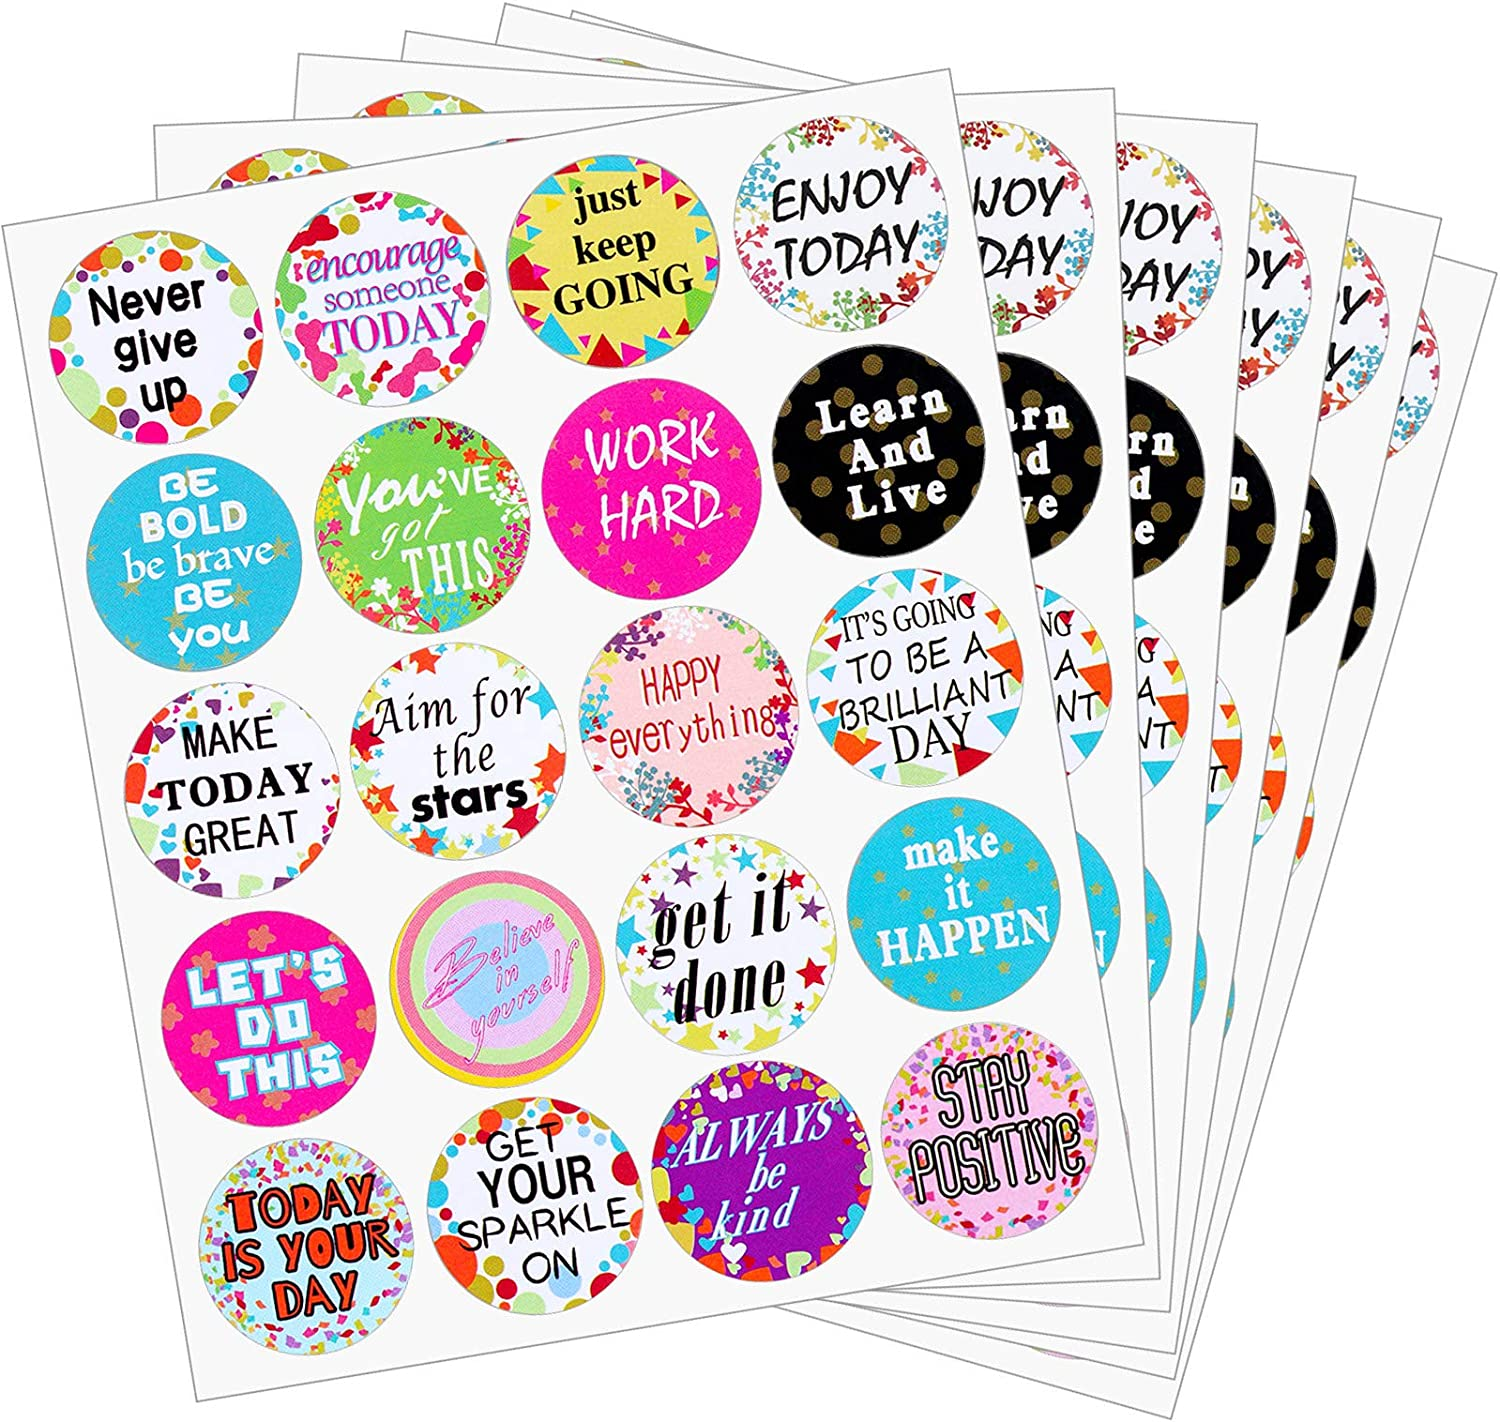 240 Pieces Inspiring Planner Stickers Inspirational Quote Stickers Encouraging Stickers Confetti Motivational Encouragement Stickers for Laptop Book Phone Car Luggage Bike Scrapbook